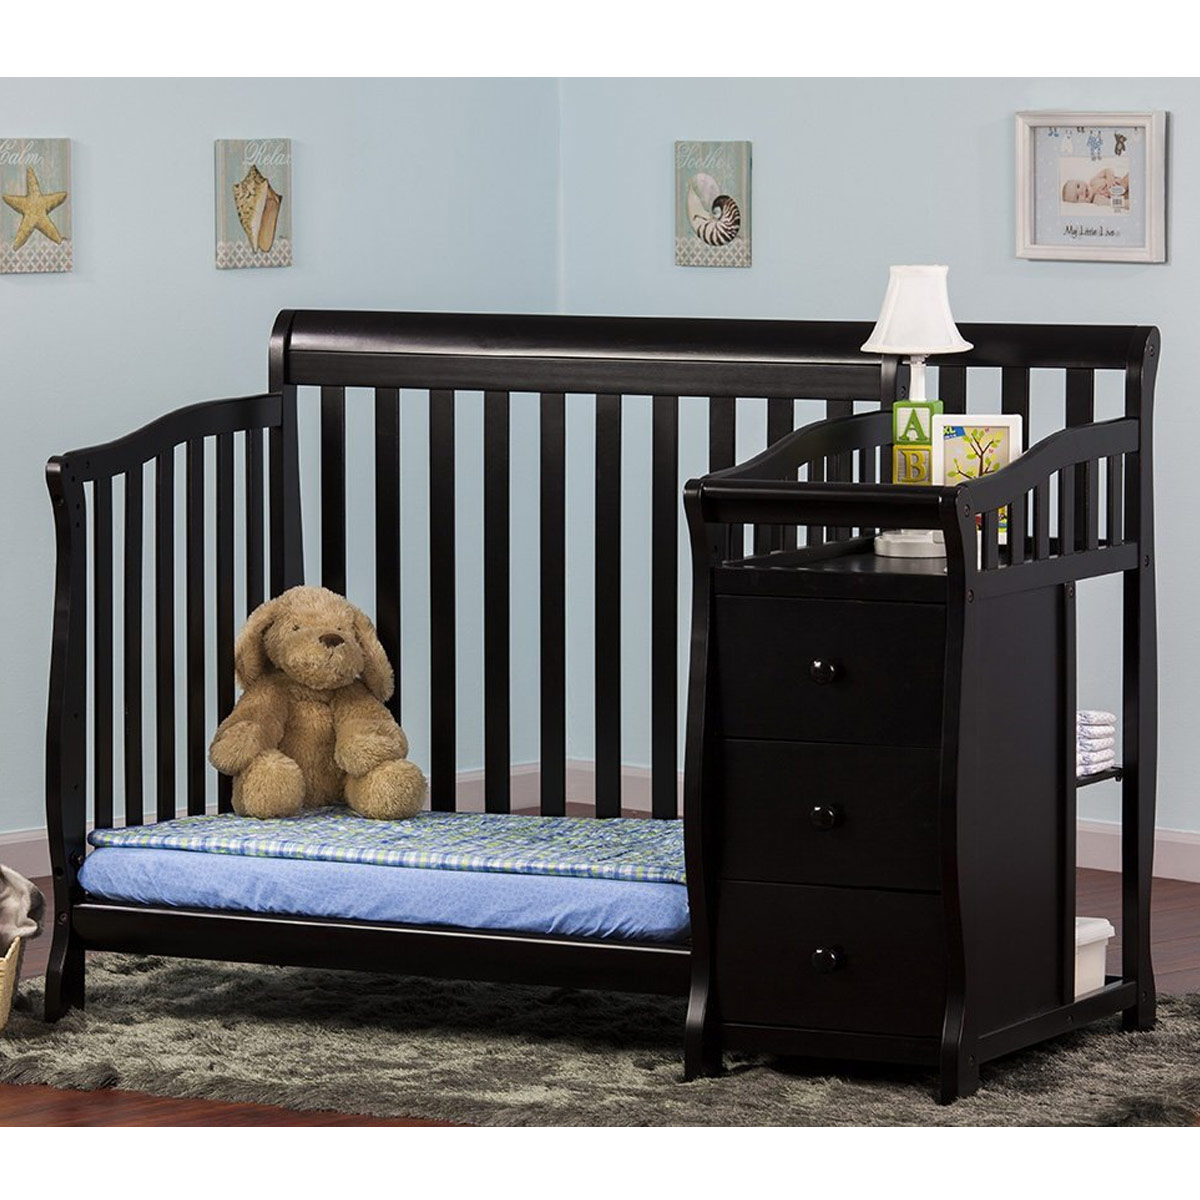 Dream On Me Jayden 2 In 1 Convertible Baby Crib With Changer In Black FREE  SHIPPING